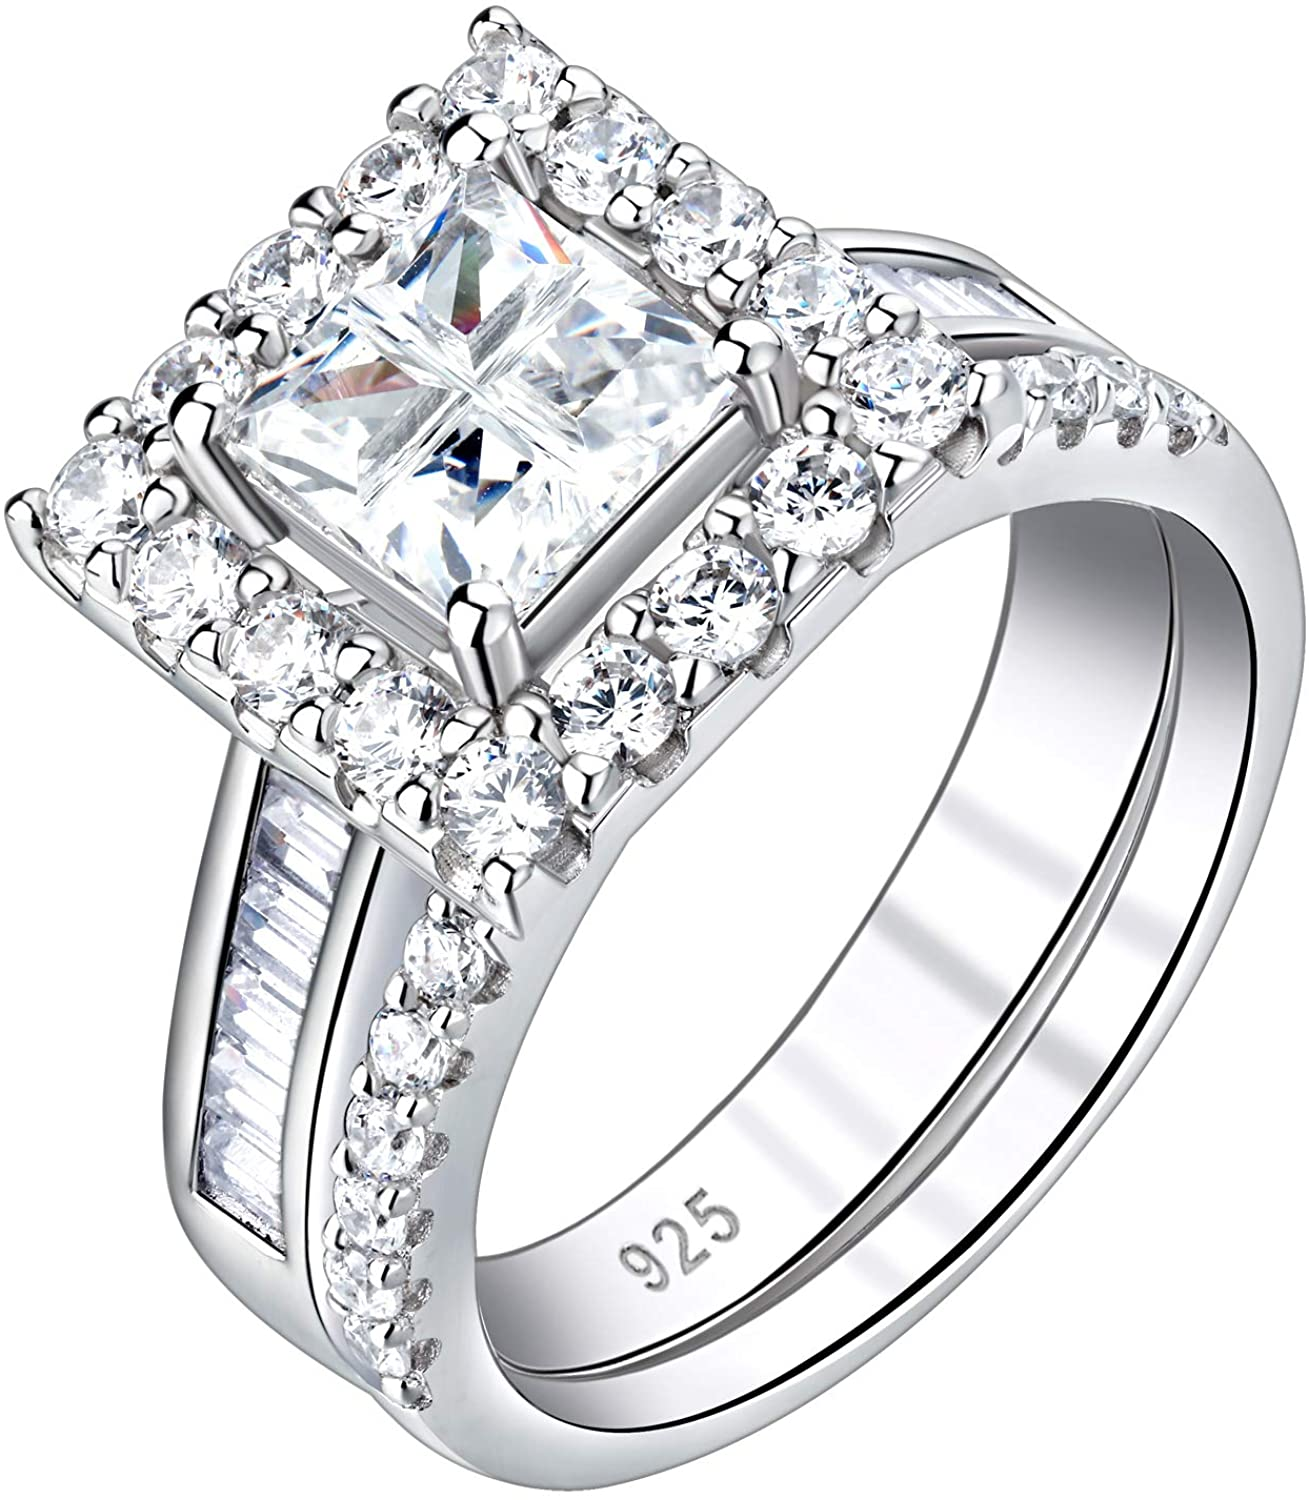 Newshe Size 5 9 10 Engagement Rings for Women Wedding Ring Sets 925 Sterling Silver Cz 2.1Ct Princess